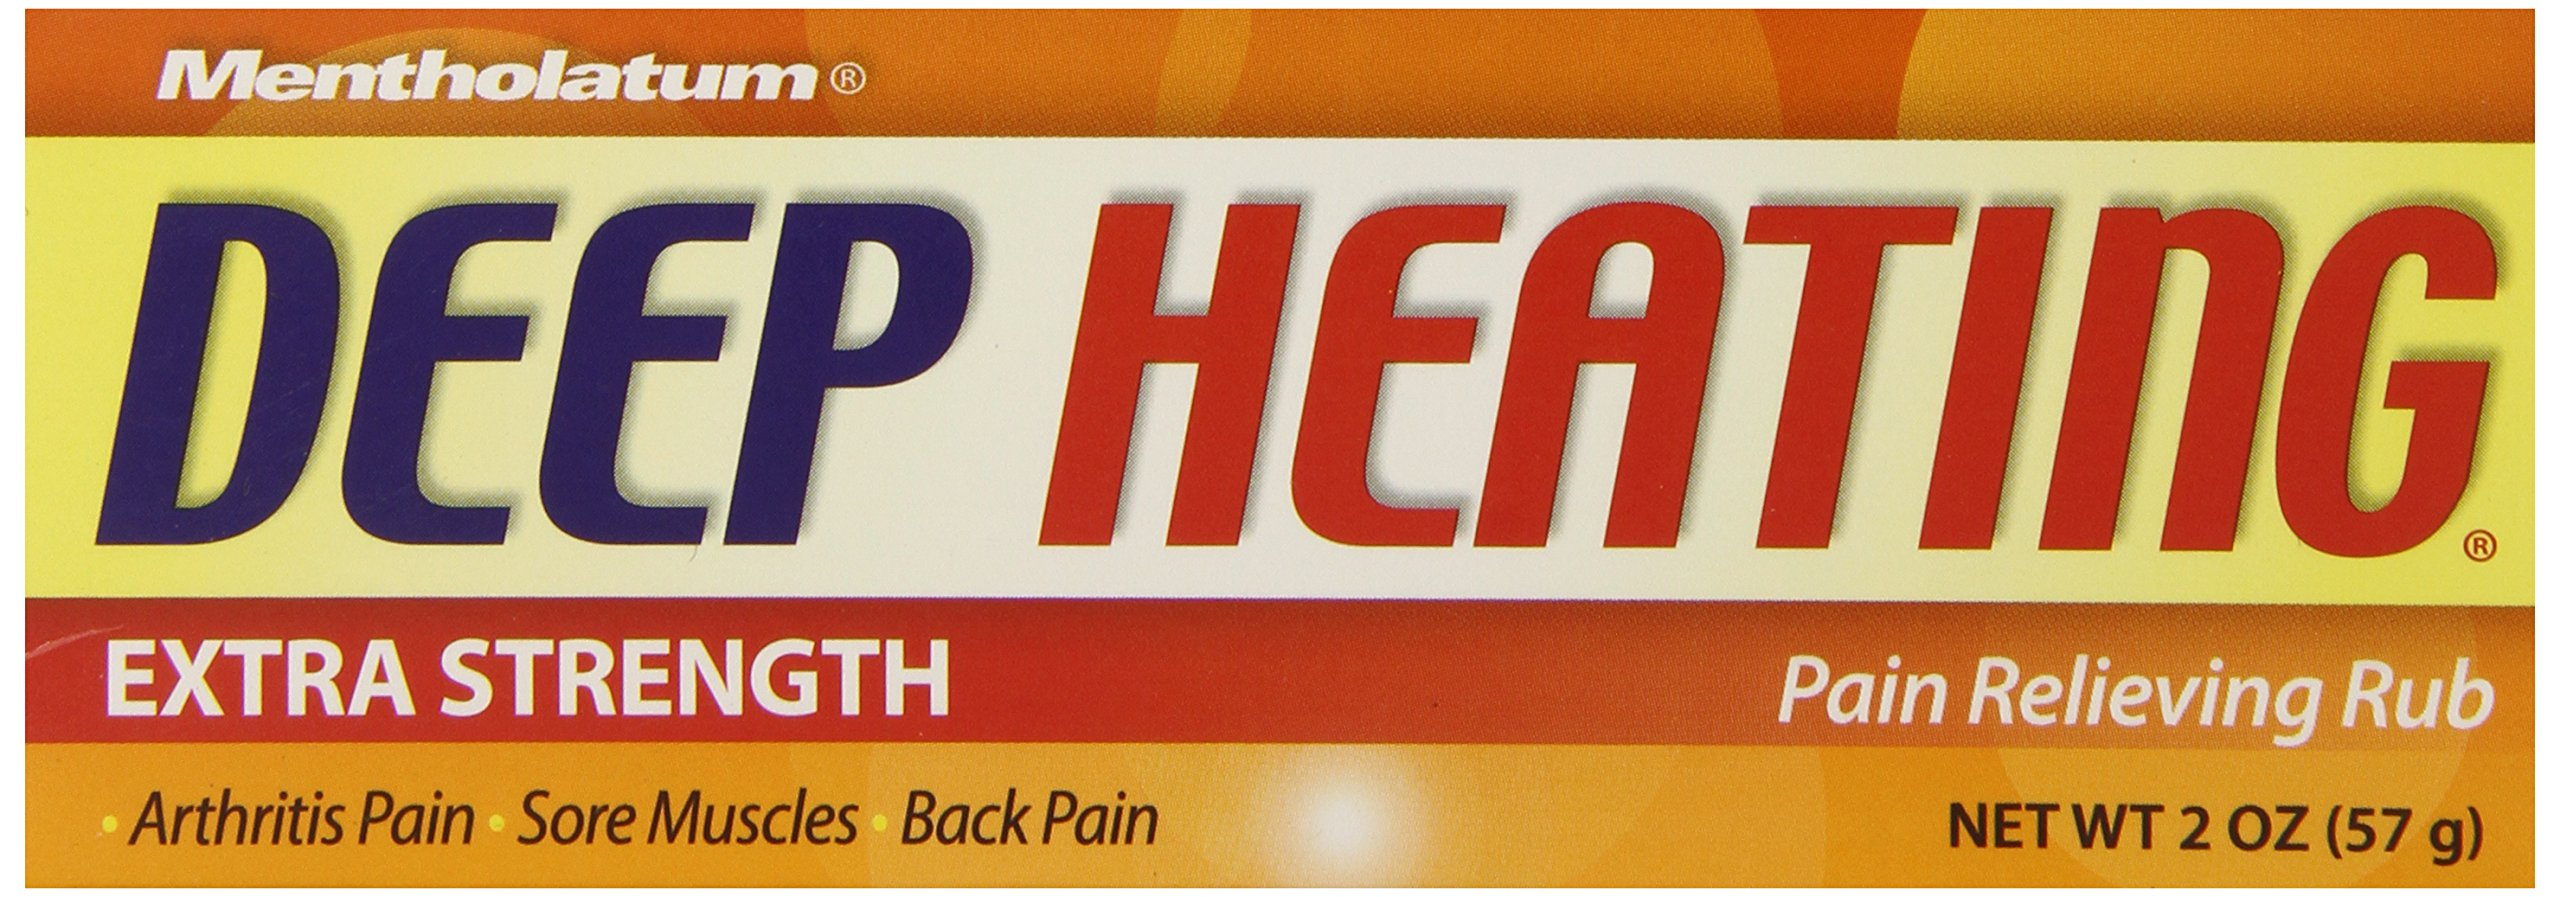 Deep Heating Pain Relieving Rub, Extra Strength, 2-Ounce (57 g) (Pack of 6)